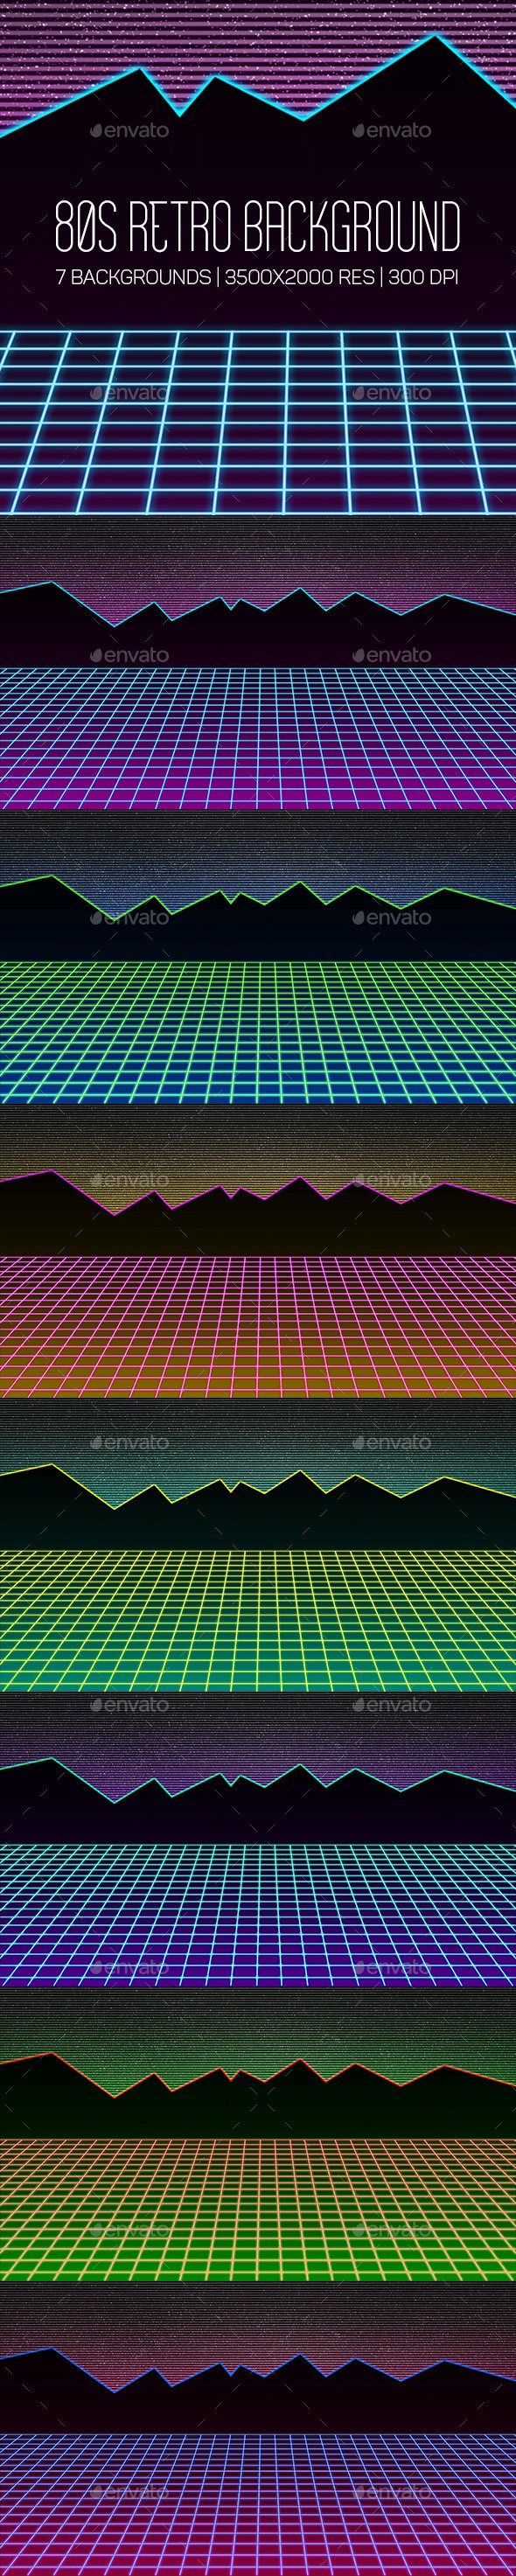 80s Retro Background - Abstract Backgrounds